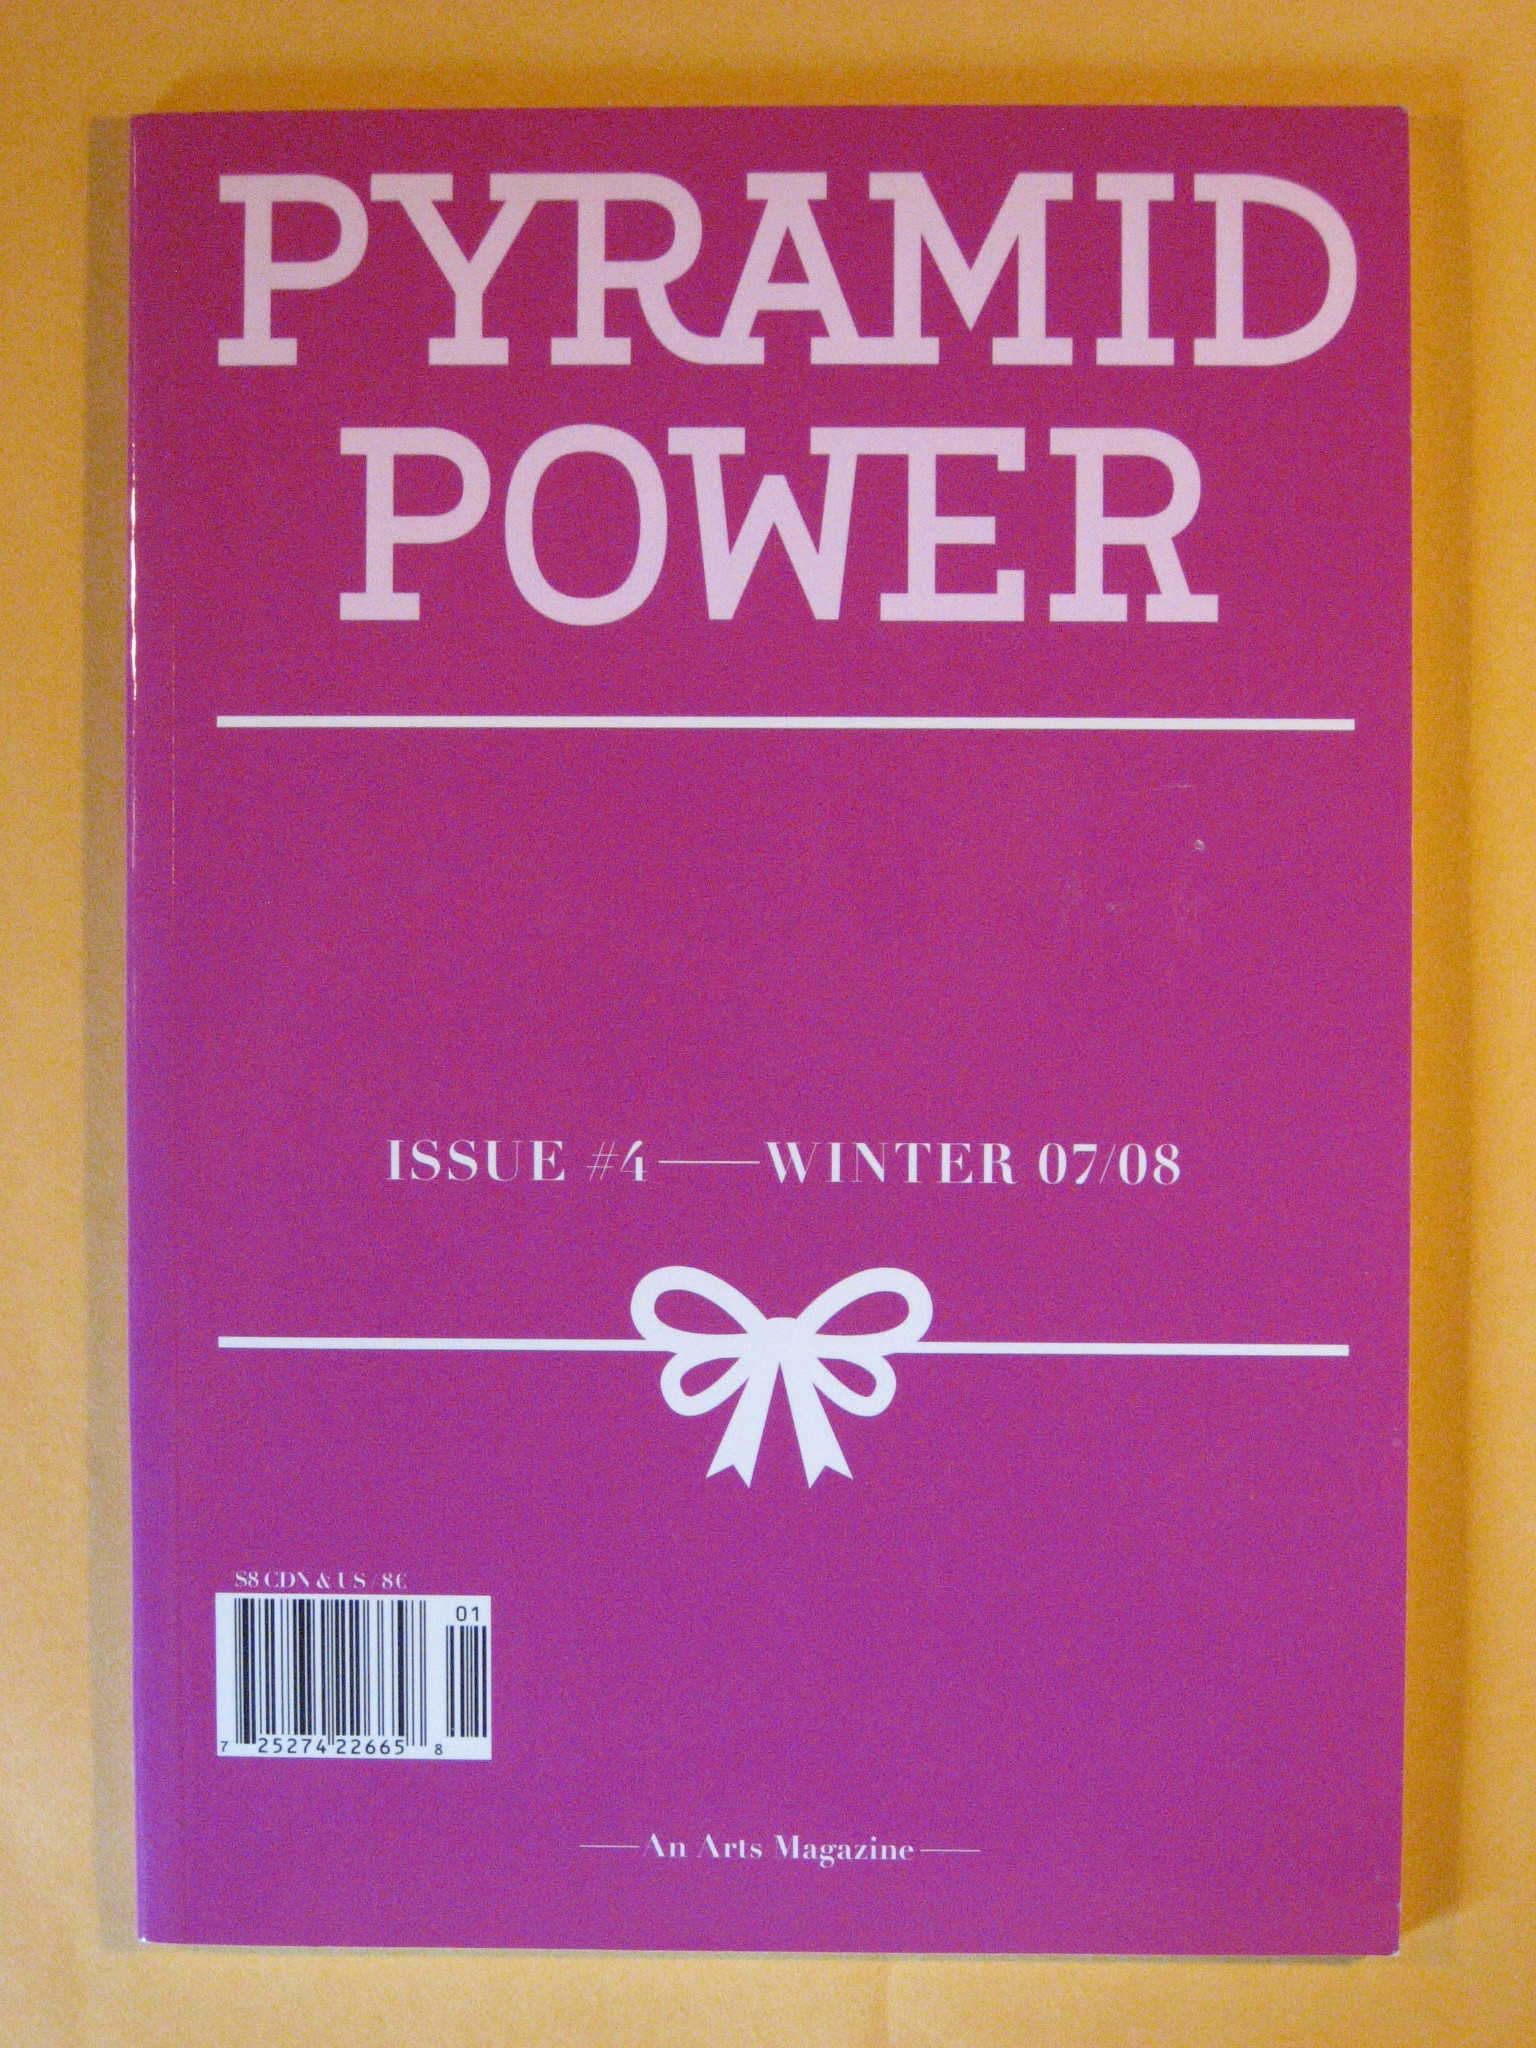 Pyramid Power Issue #4 Winter 07/08, No Author